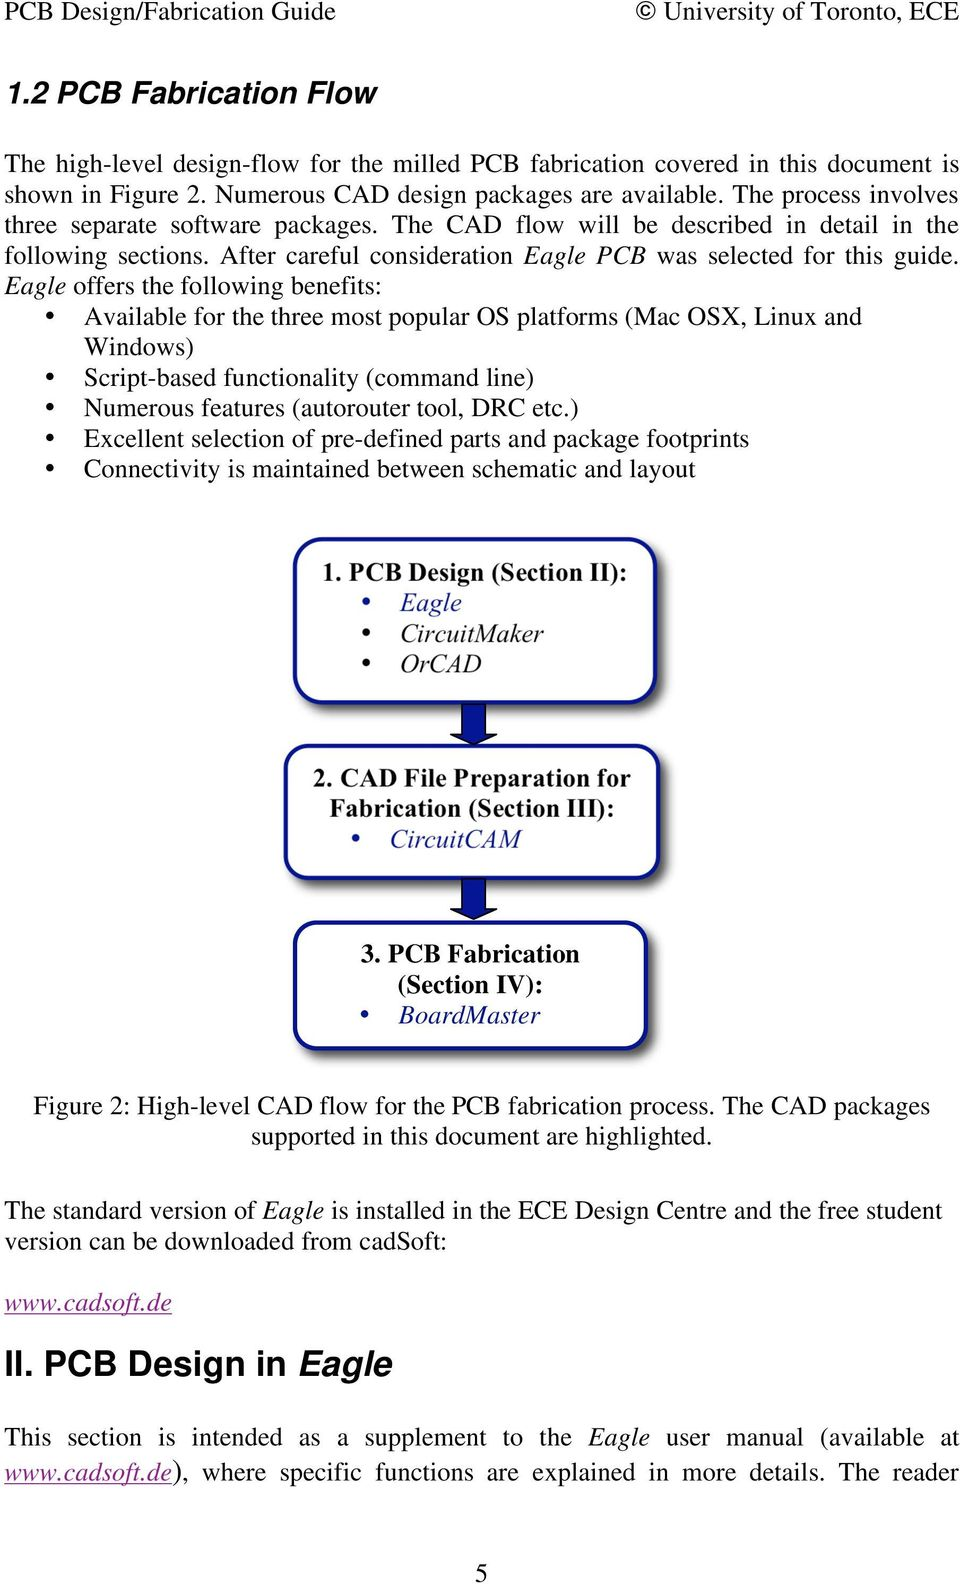 Guide To Designing And Fabricating Printed Circuit Boards Pdf Maker 2000 Software Download Free Eagle Offers The Following Benefits Available For Three Most Popular Os Platforms Mac